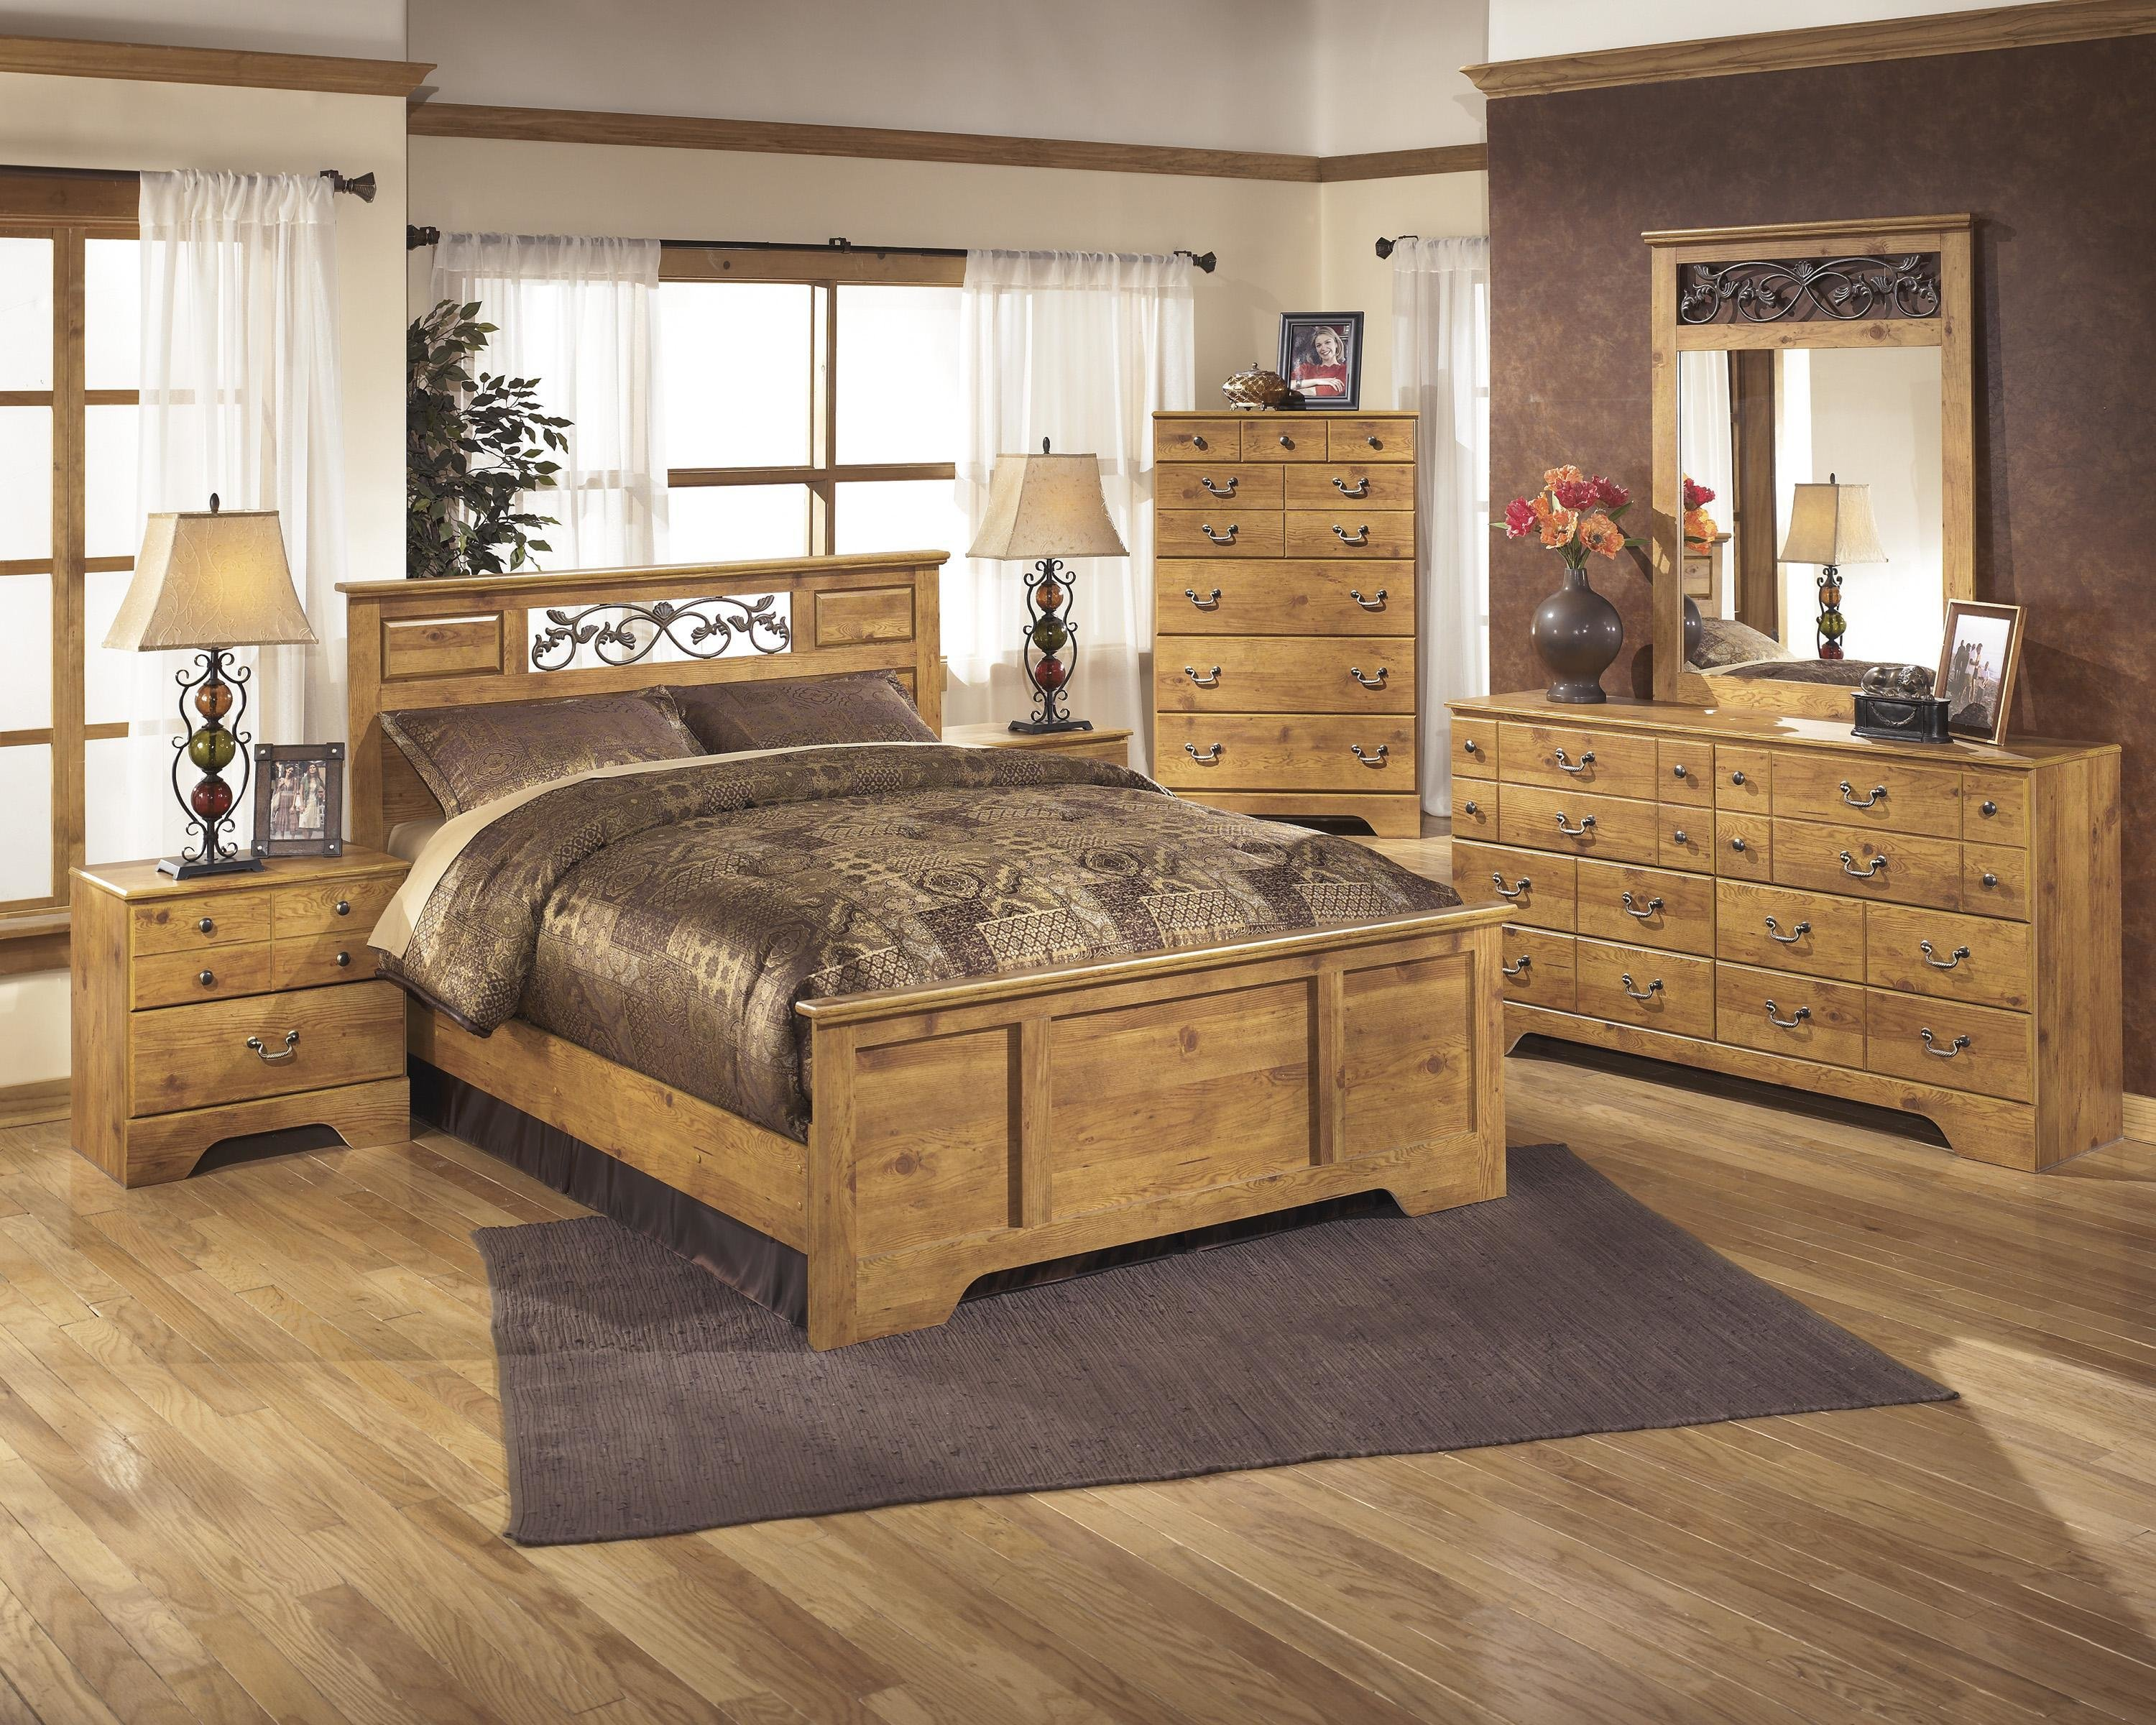 Best Signature Design By Ashley Bittersweet Queen Bedroom Group With Pictures